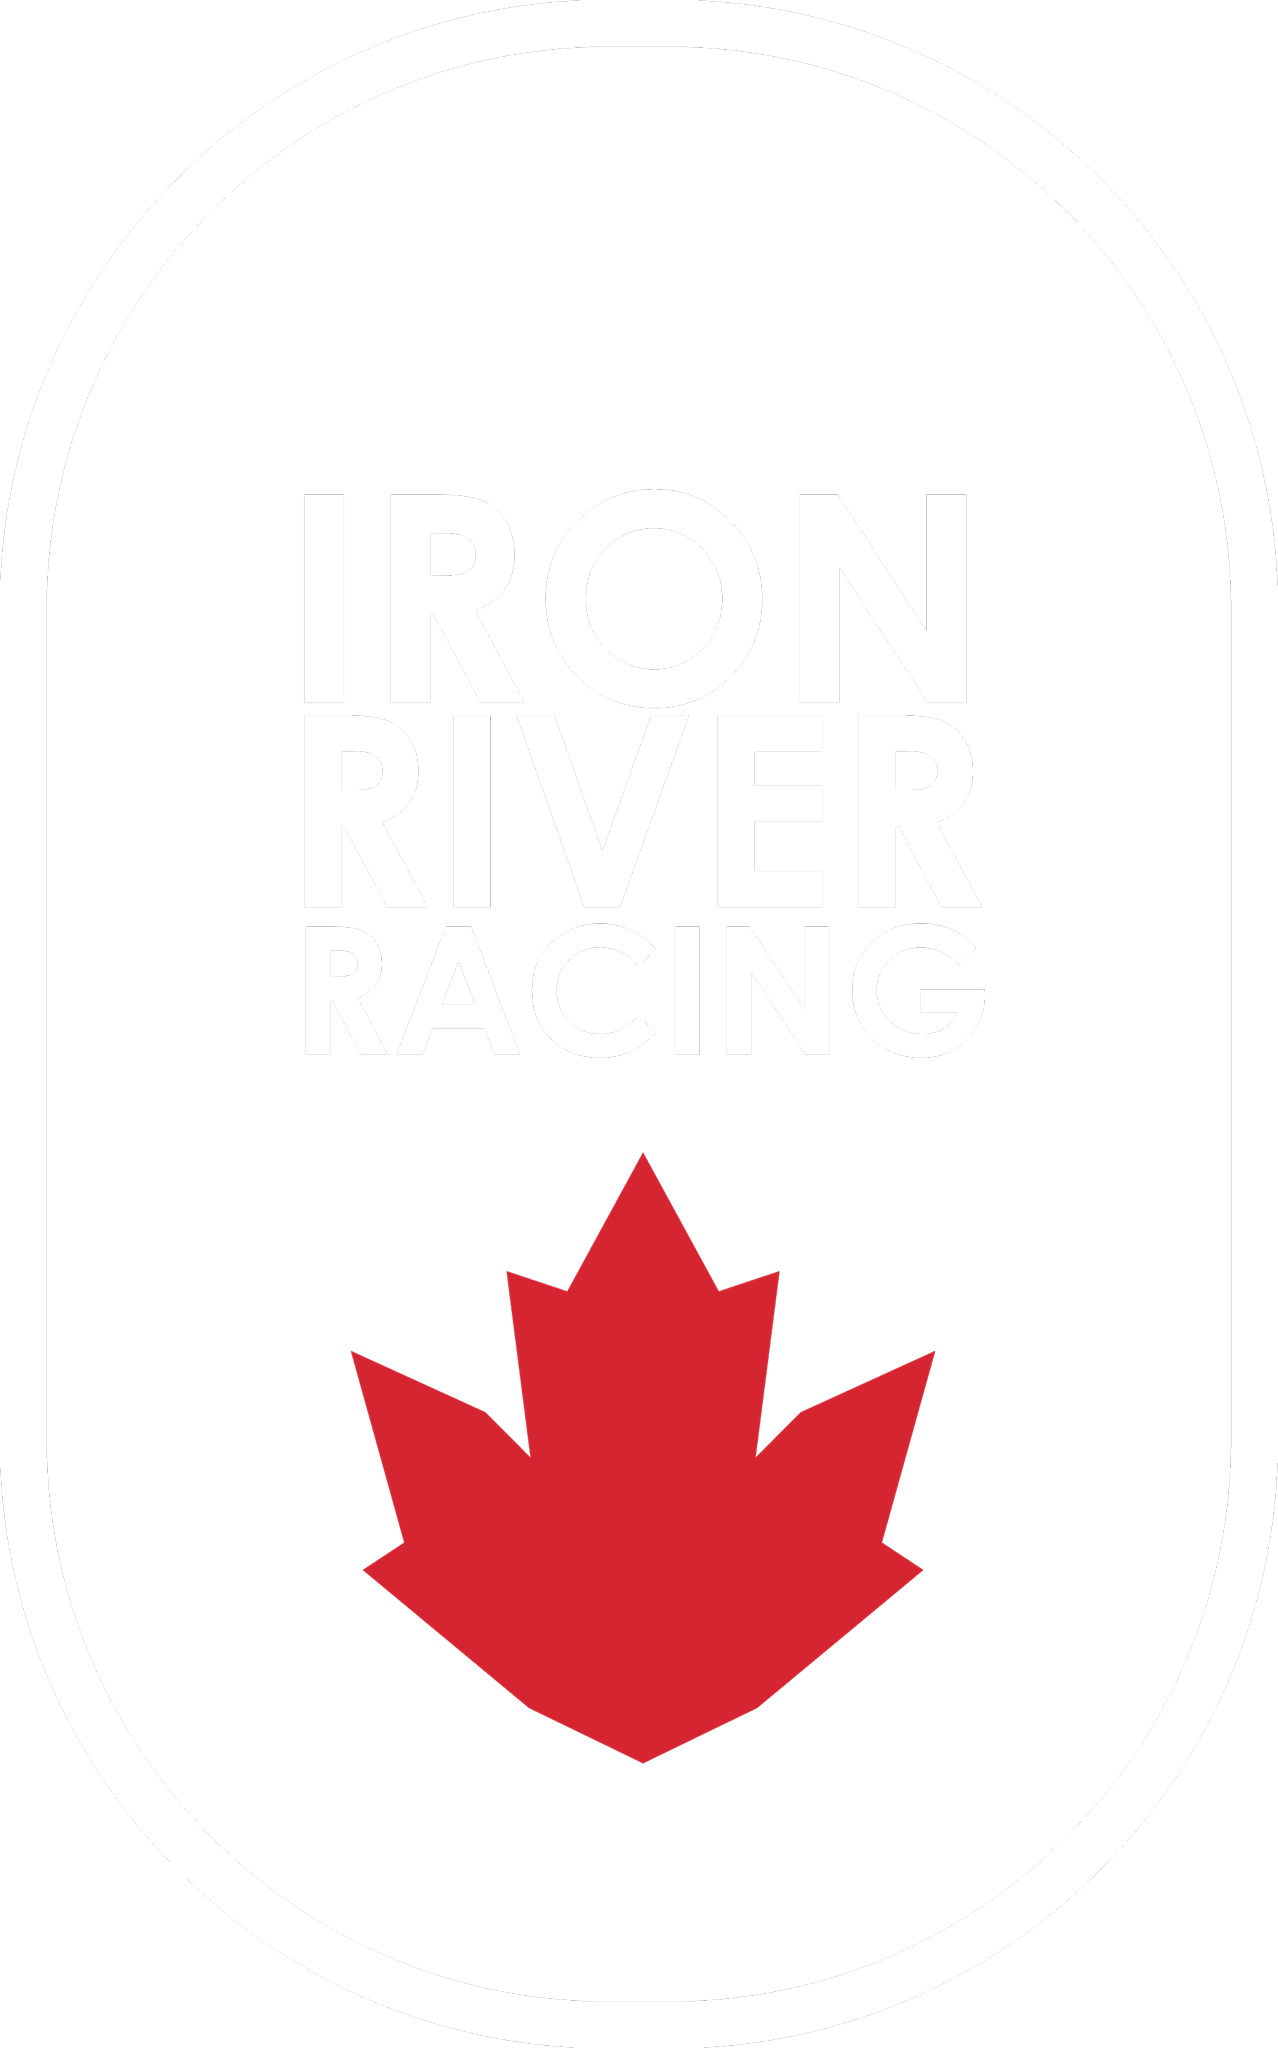 Iron River Racing